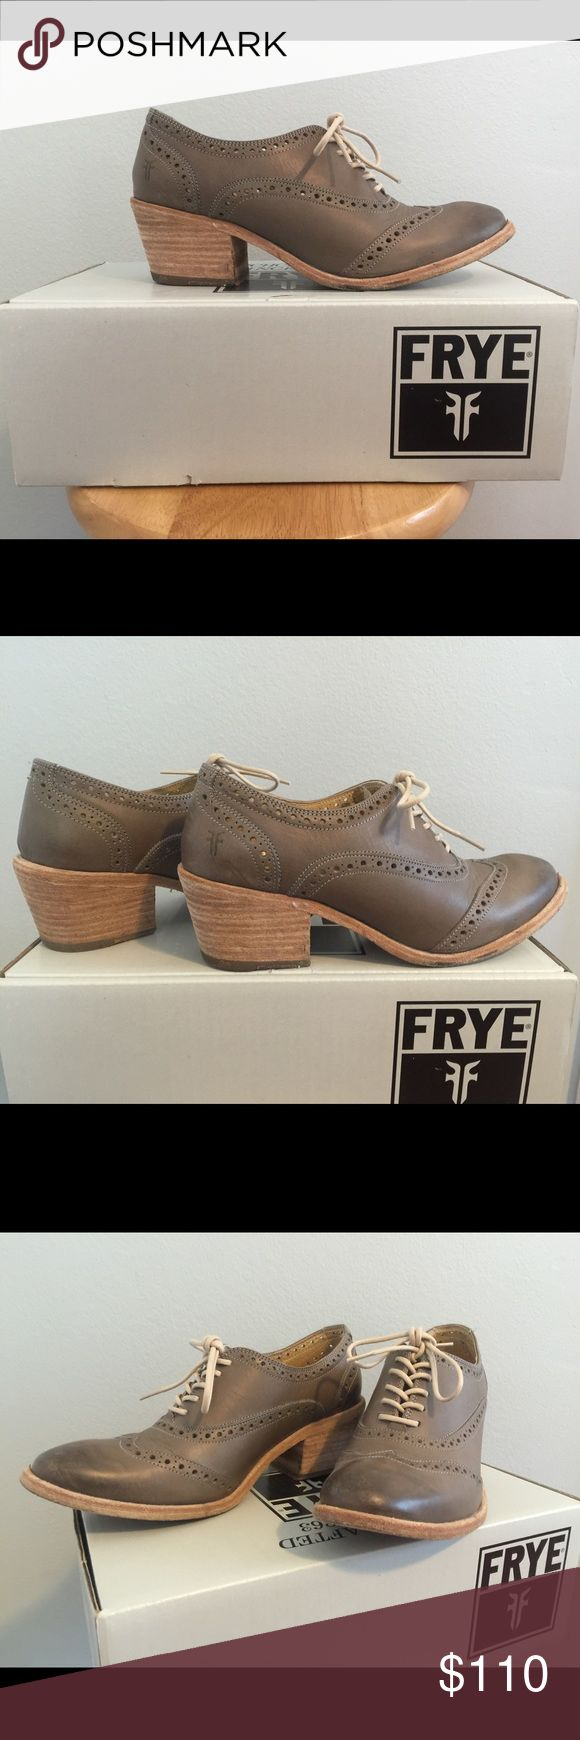 FRYE Maggie Perforated Wingtip Oxfords size 9 Beautiful pair of FRYE wingtip oxfords with a slightly higher heel- super cute with jeans or dresses/skirts. Can be worn with or without socks/tights. Gently worn less than ten times, good condition with slight scuffing on toeboxes. No longer available from FRYE. Color is a sepia-gray with cream leather laces. Frye Shoes Flats & Loafers